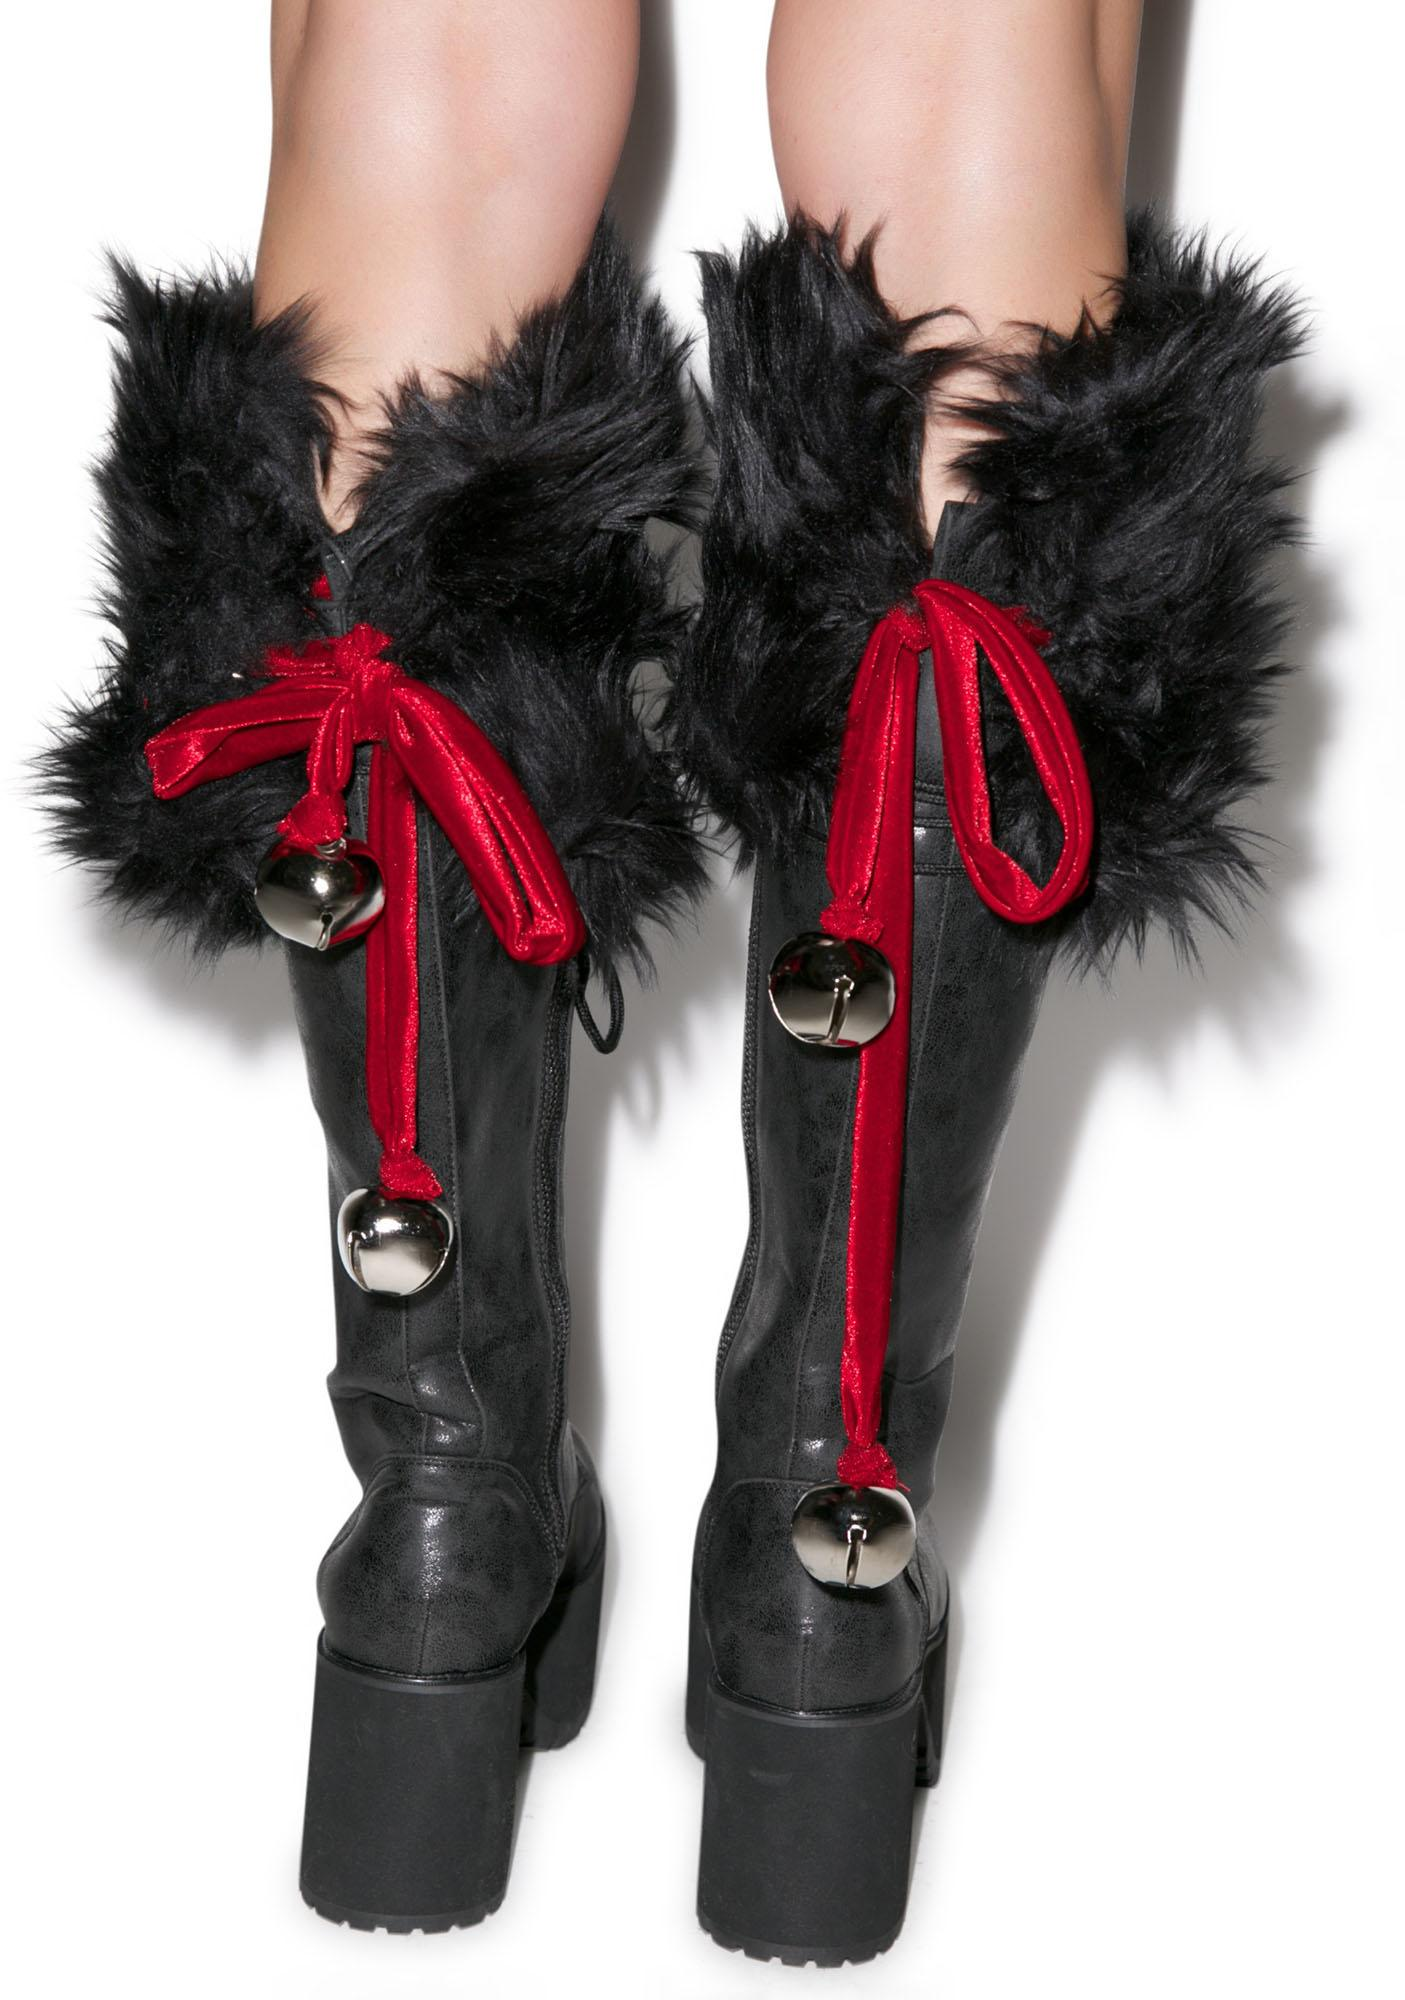 J Valentine Jingle Bell Boot Toppers